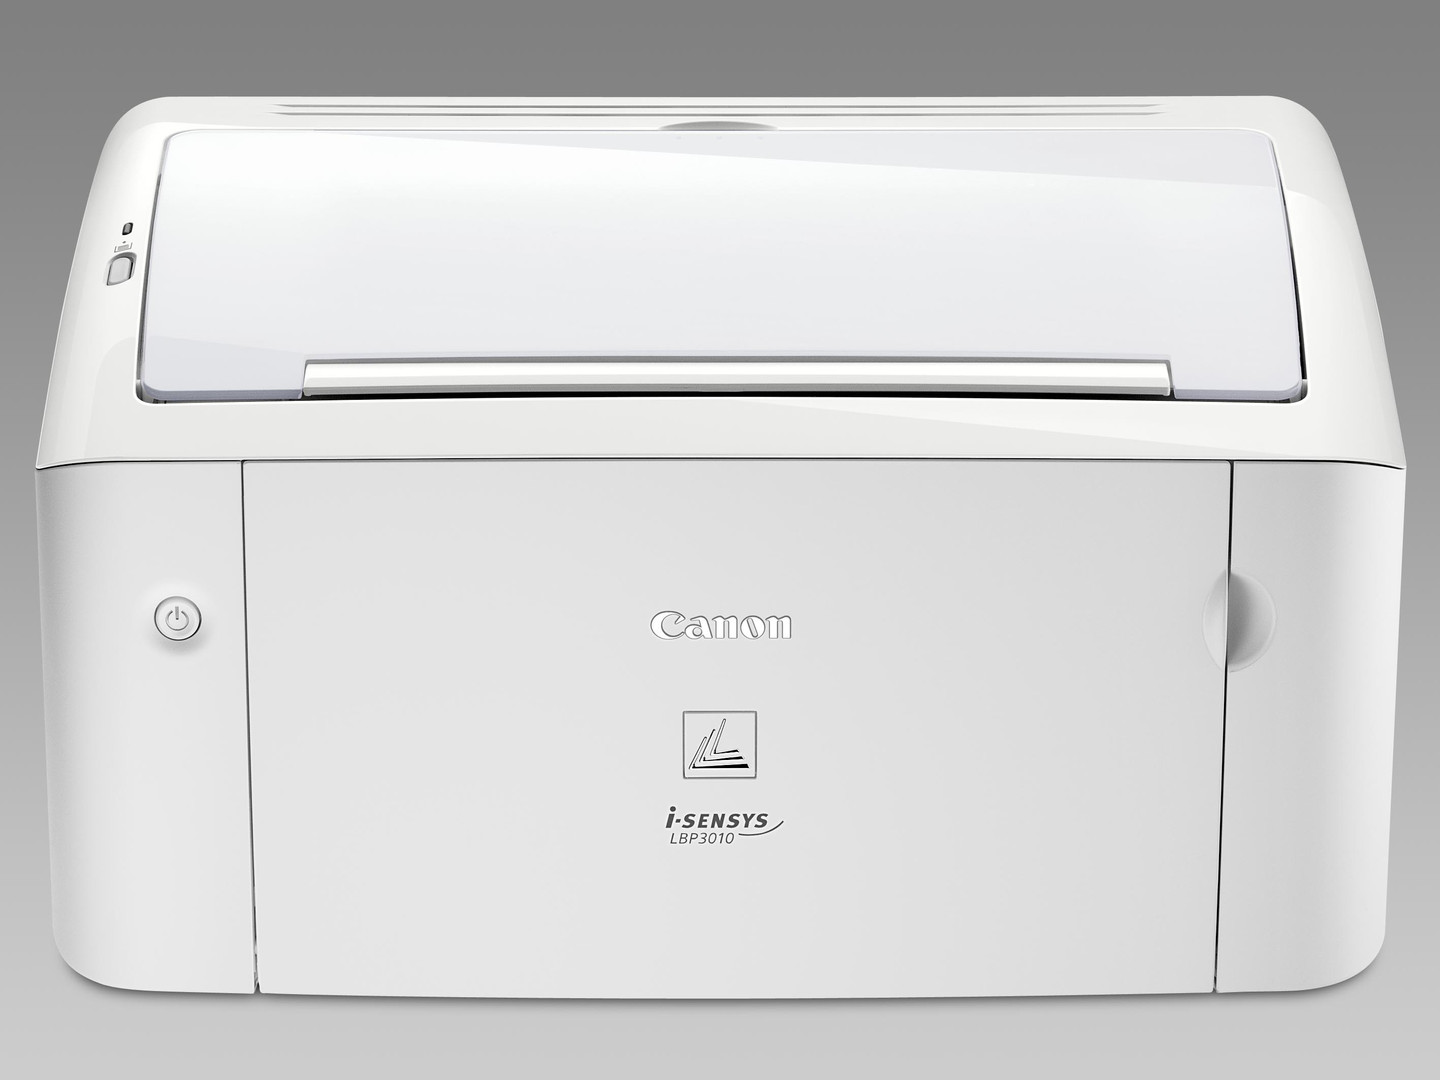 Canon LBP 3010 Drivers Download For windows xp and vista - photo#32